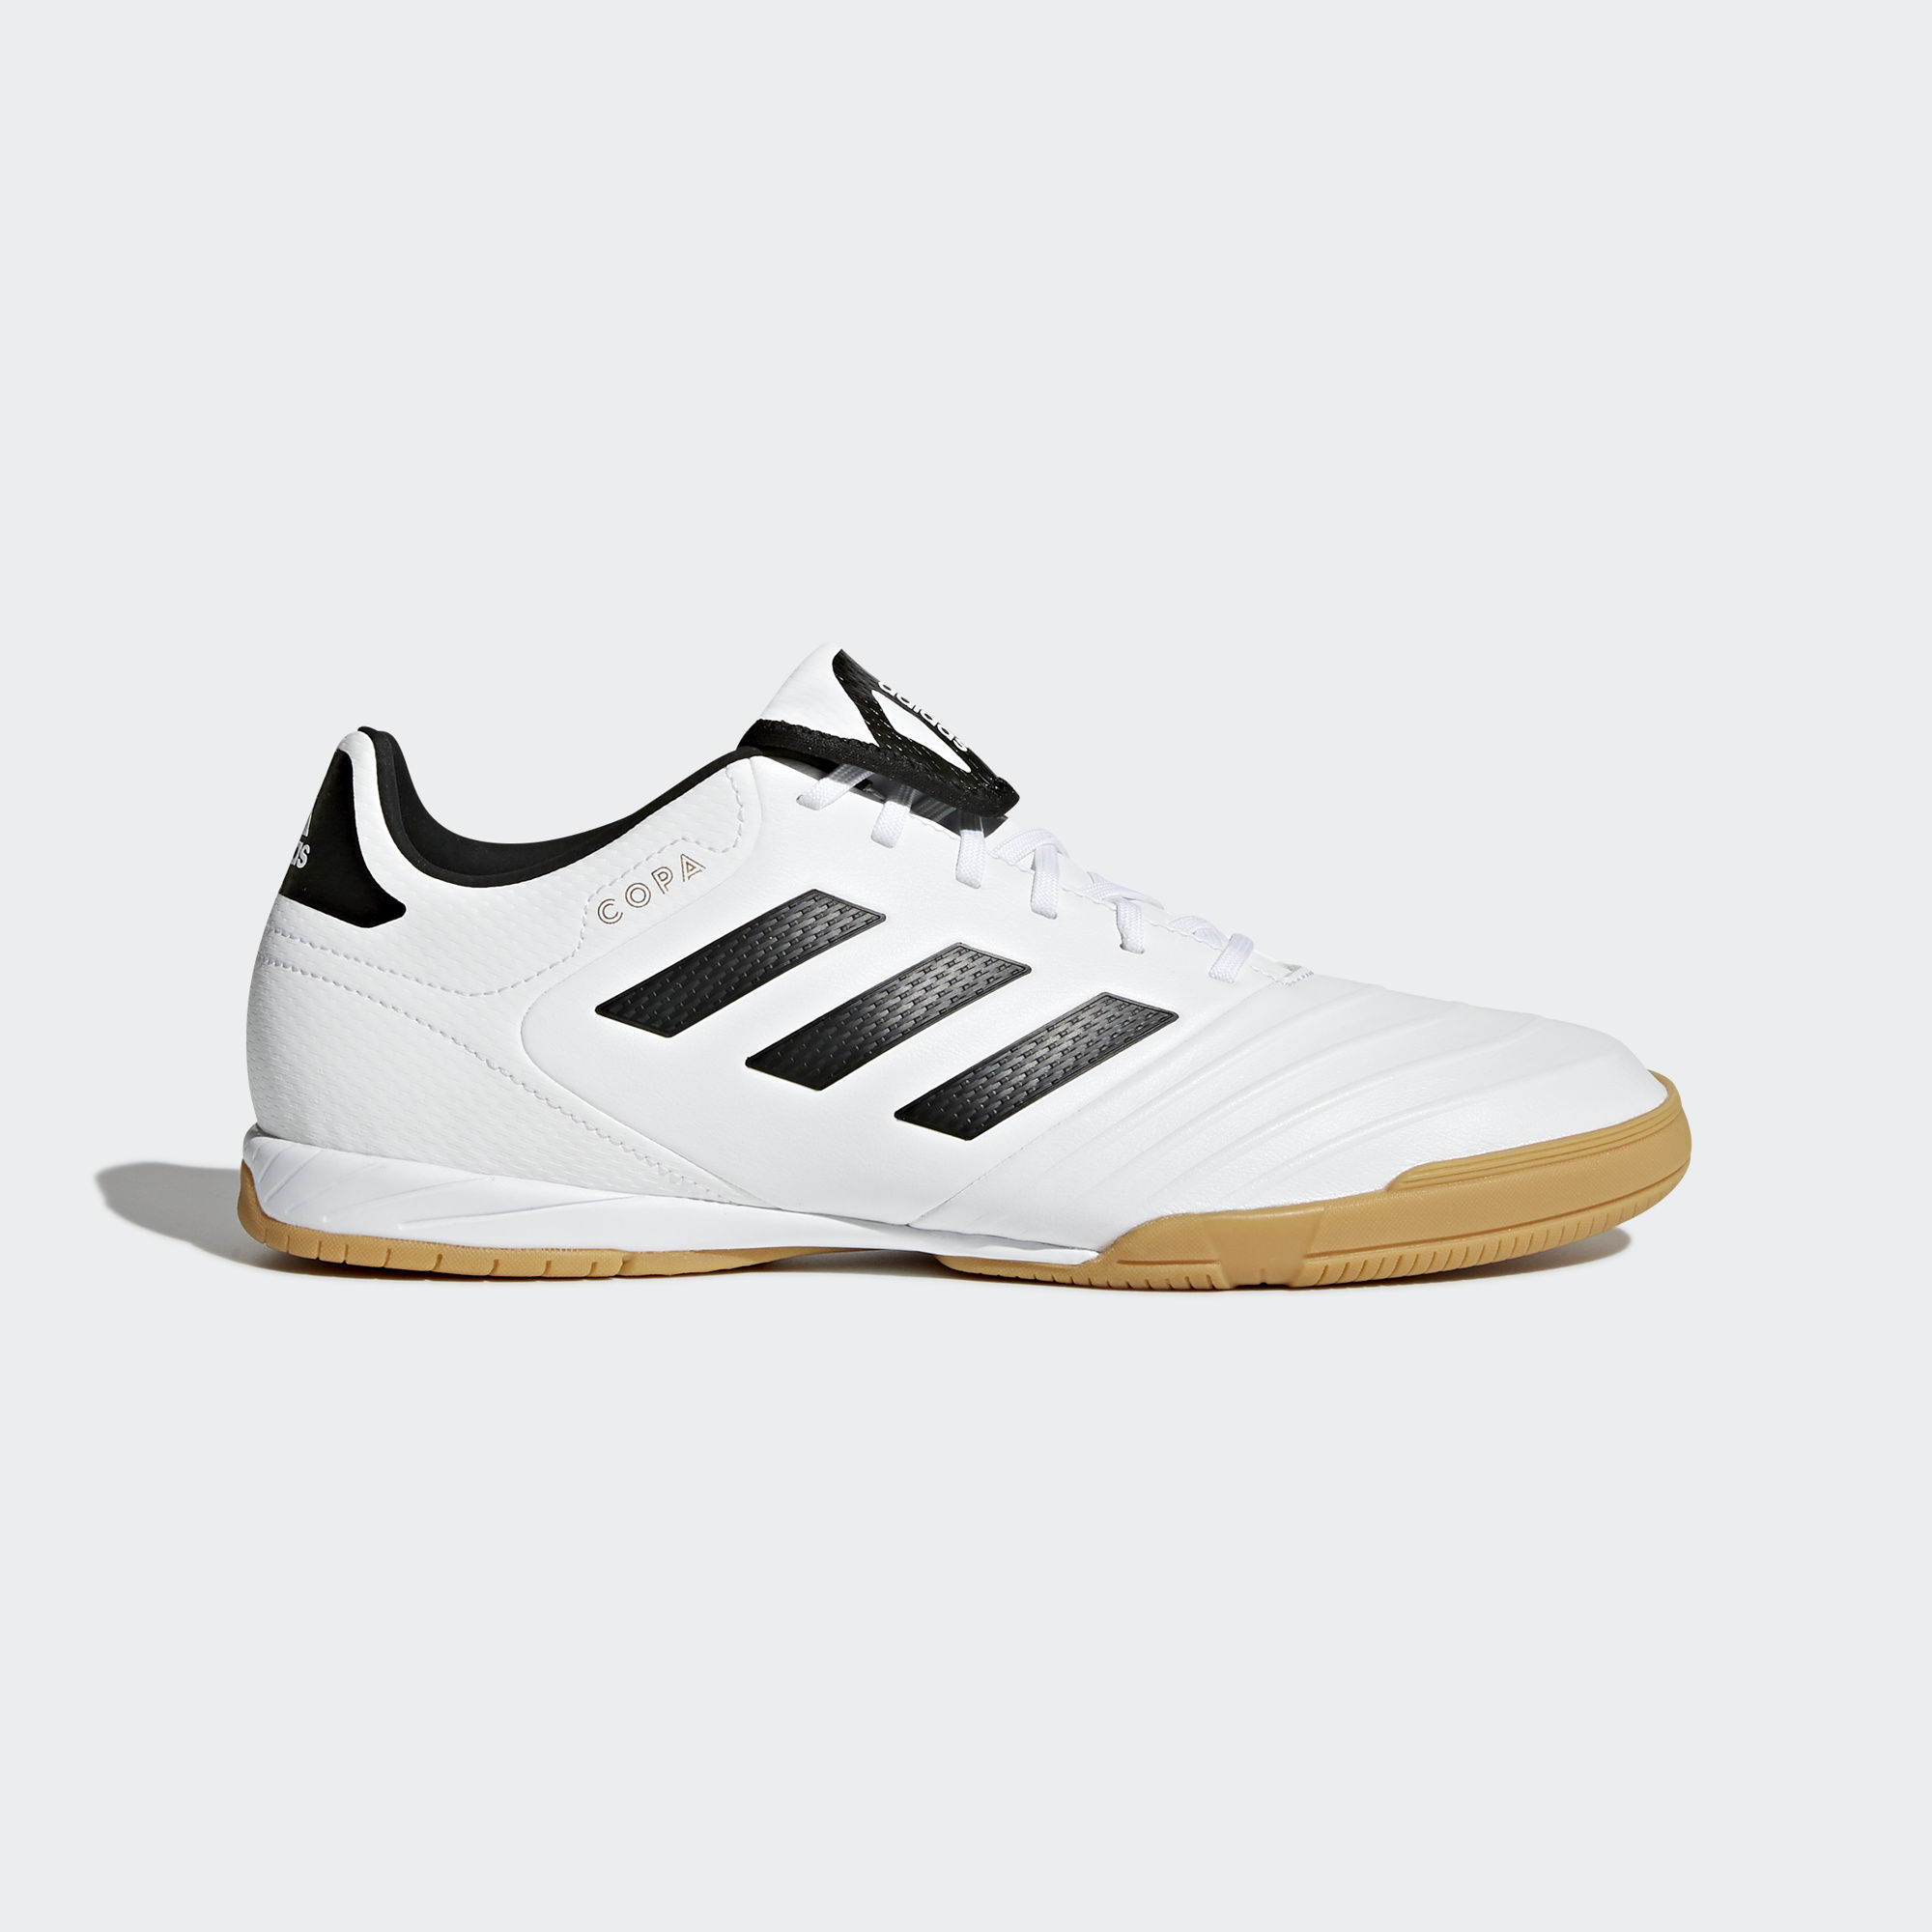 check out 6804a 4597d Adidas Copa Tango 18.3 IN